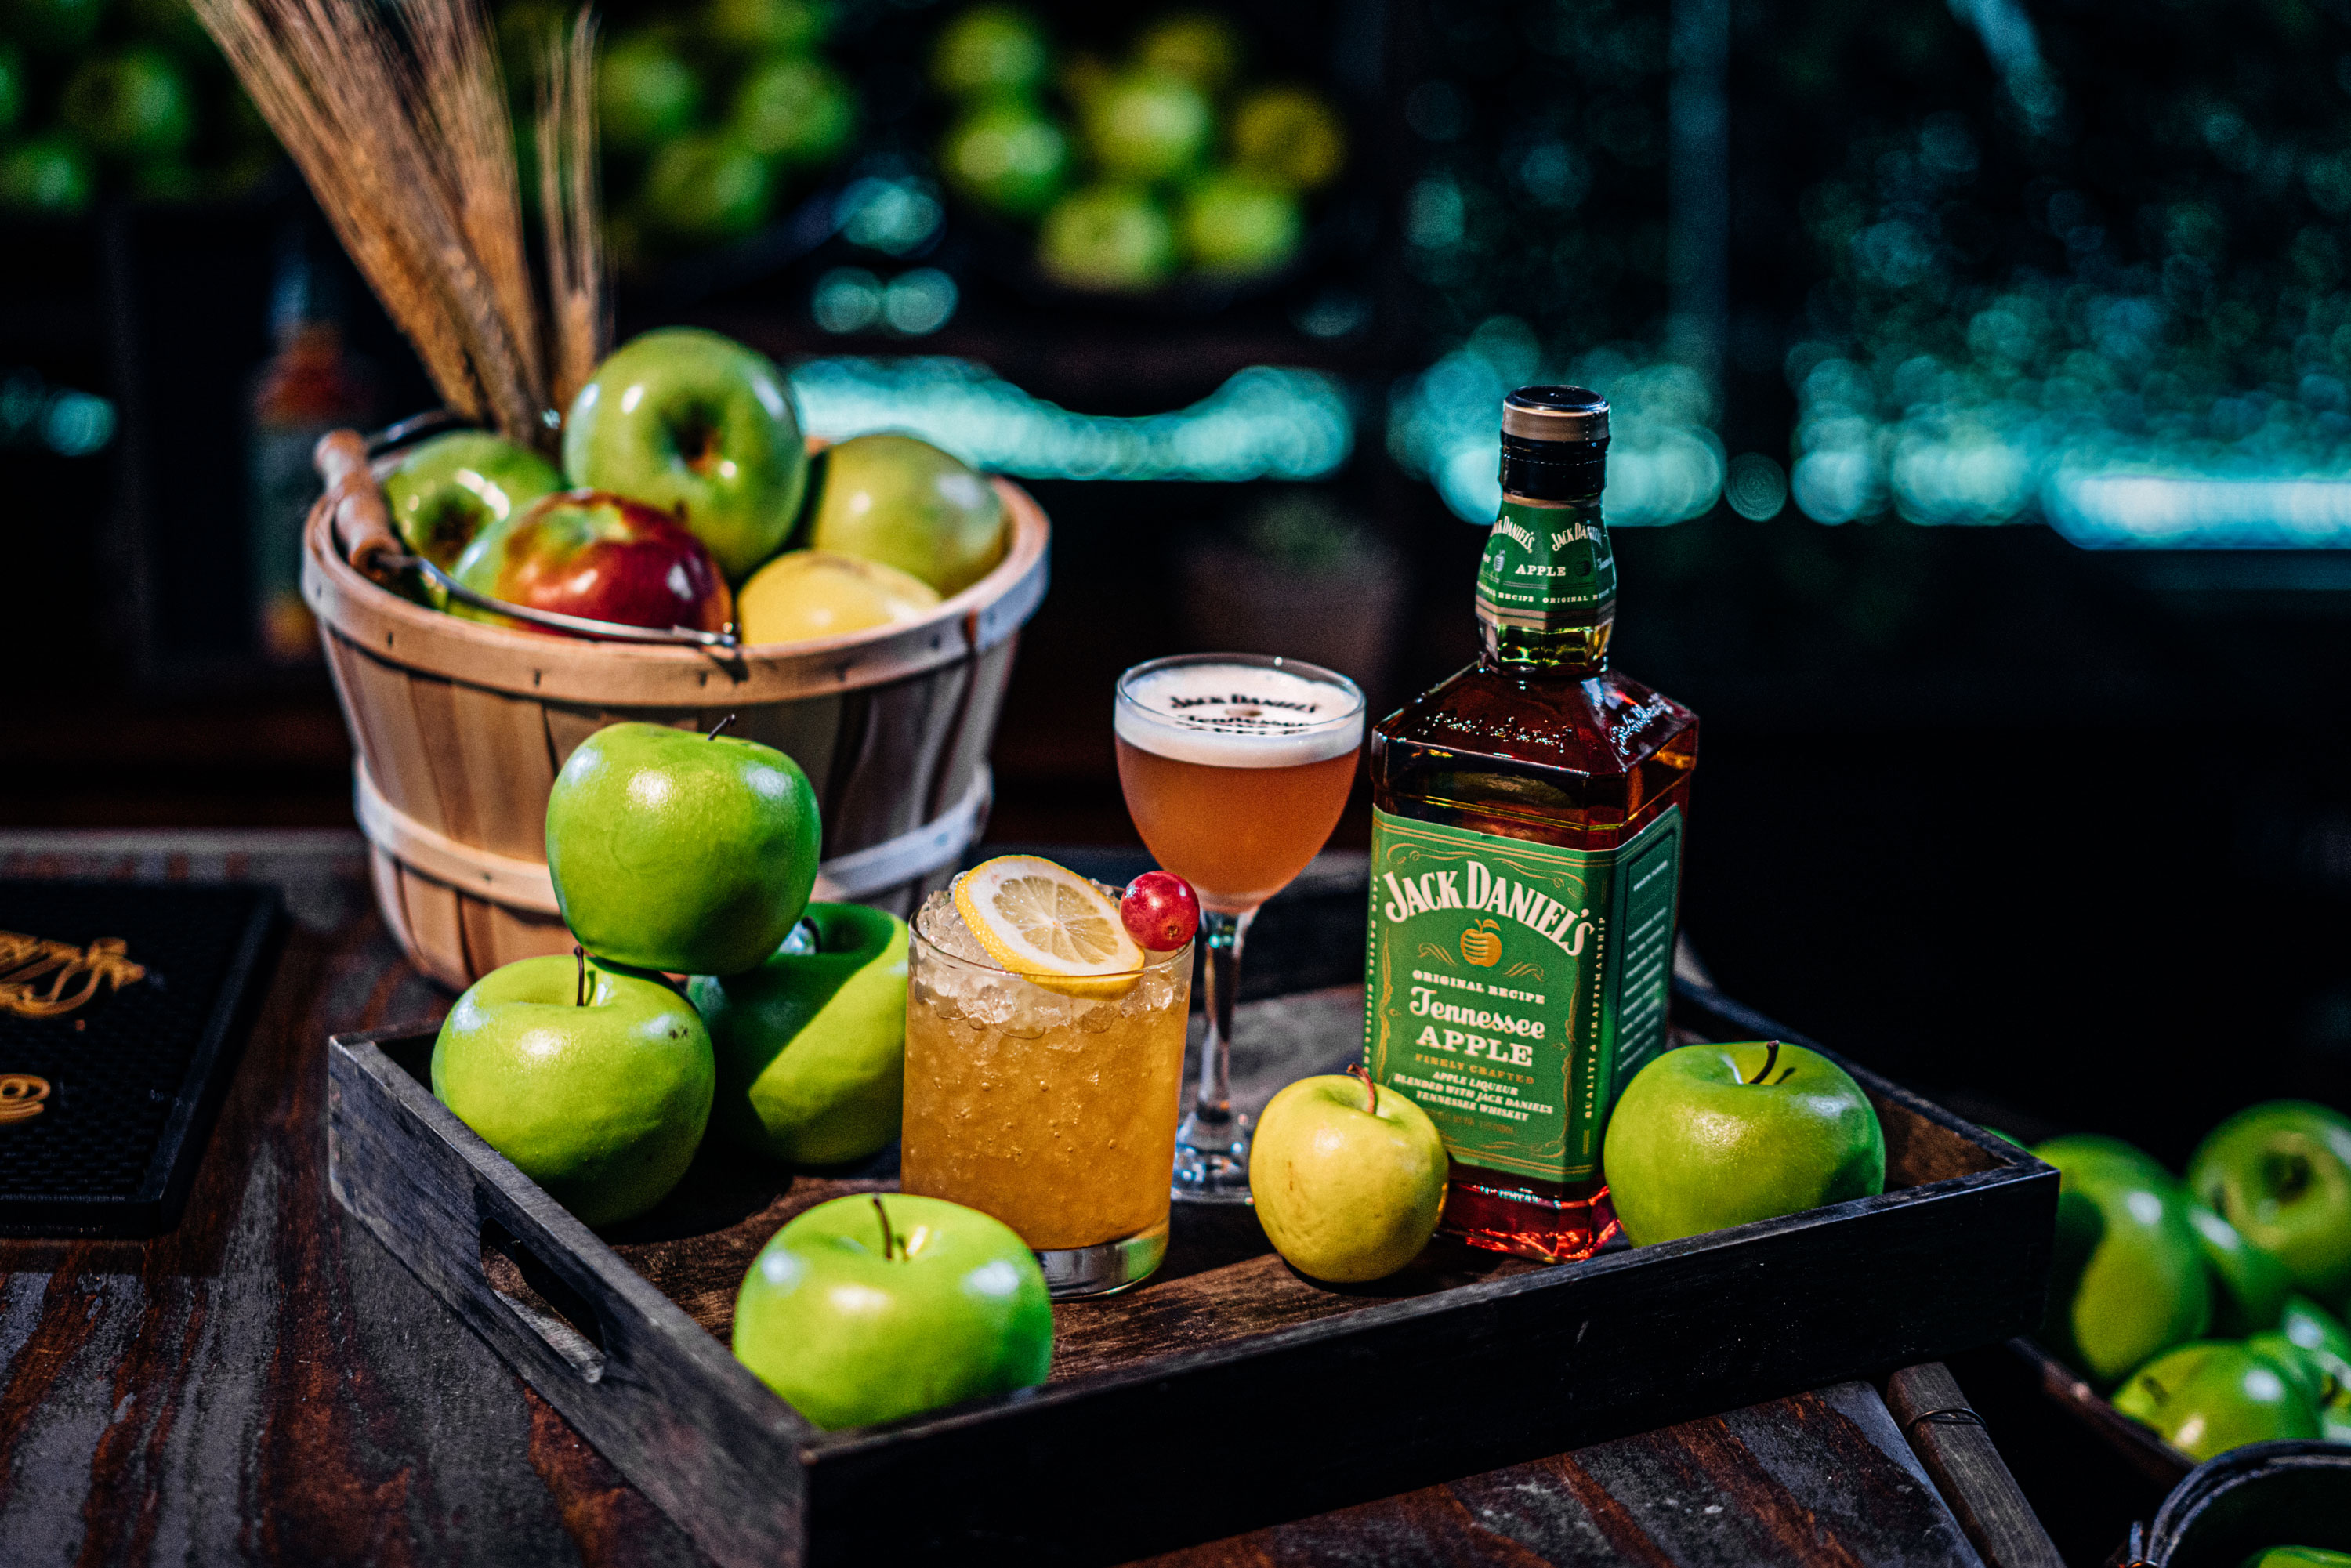 Jack Daniels Tennessee Apple bottle with served drinks and apples